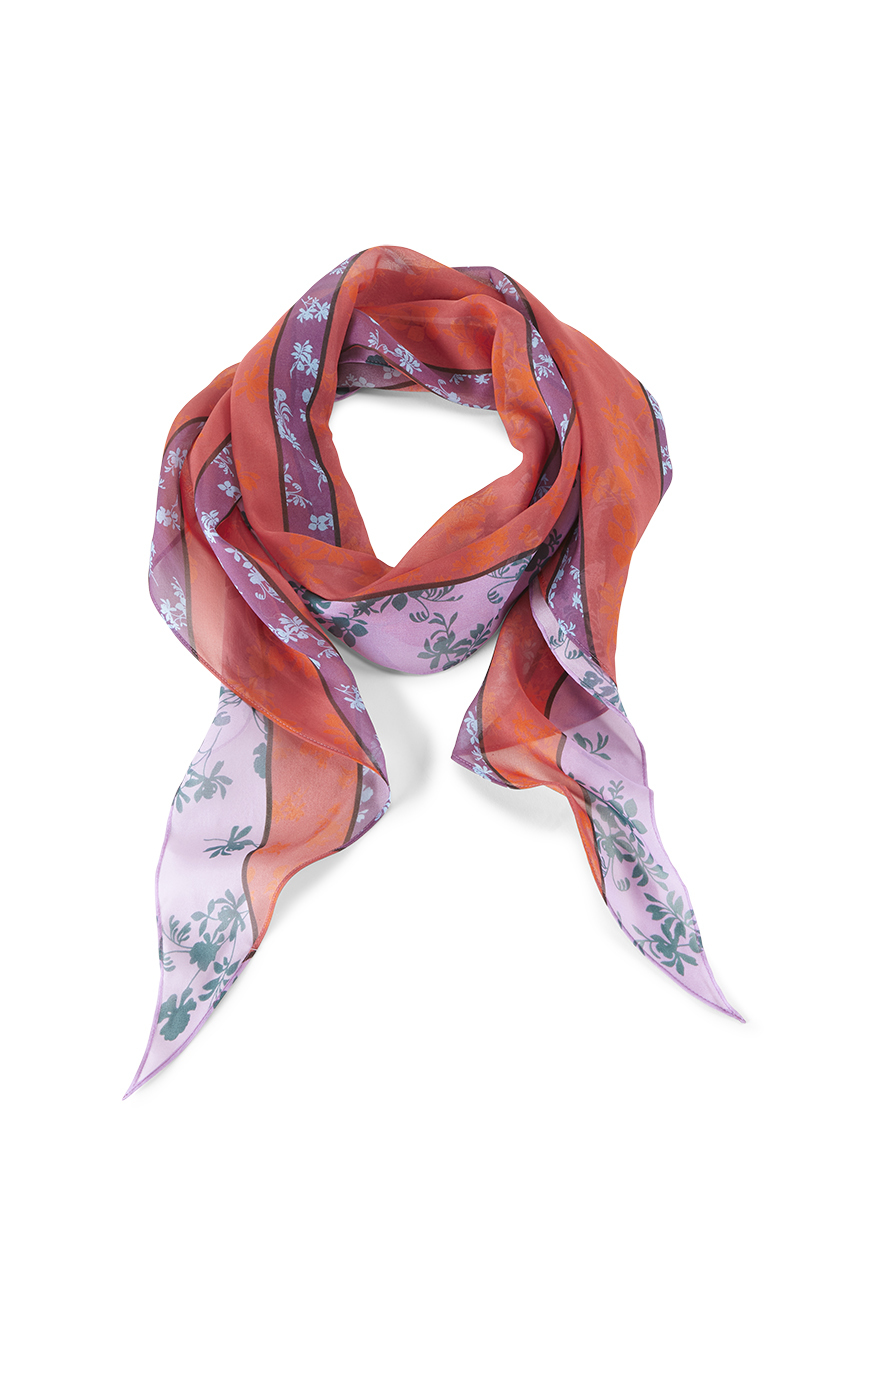 Coy Scarf in Multi Front